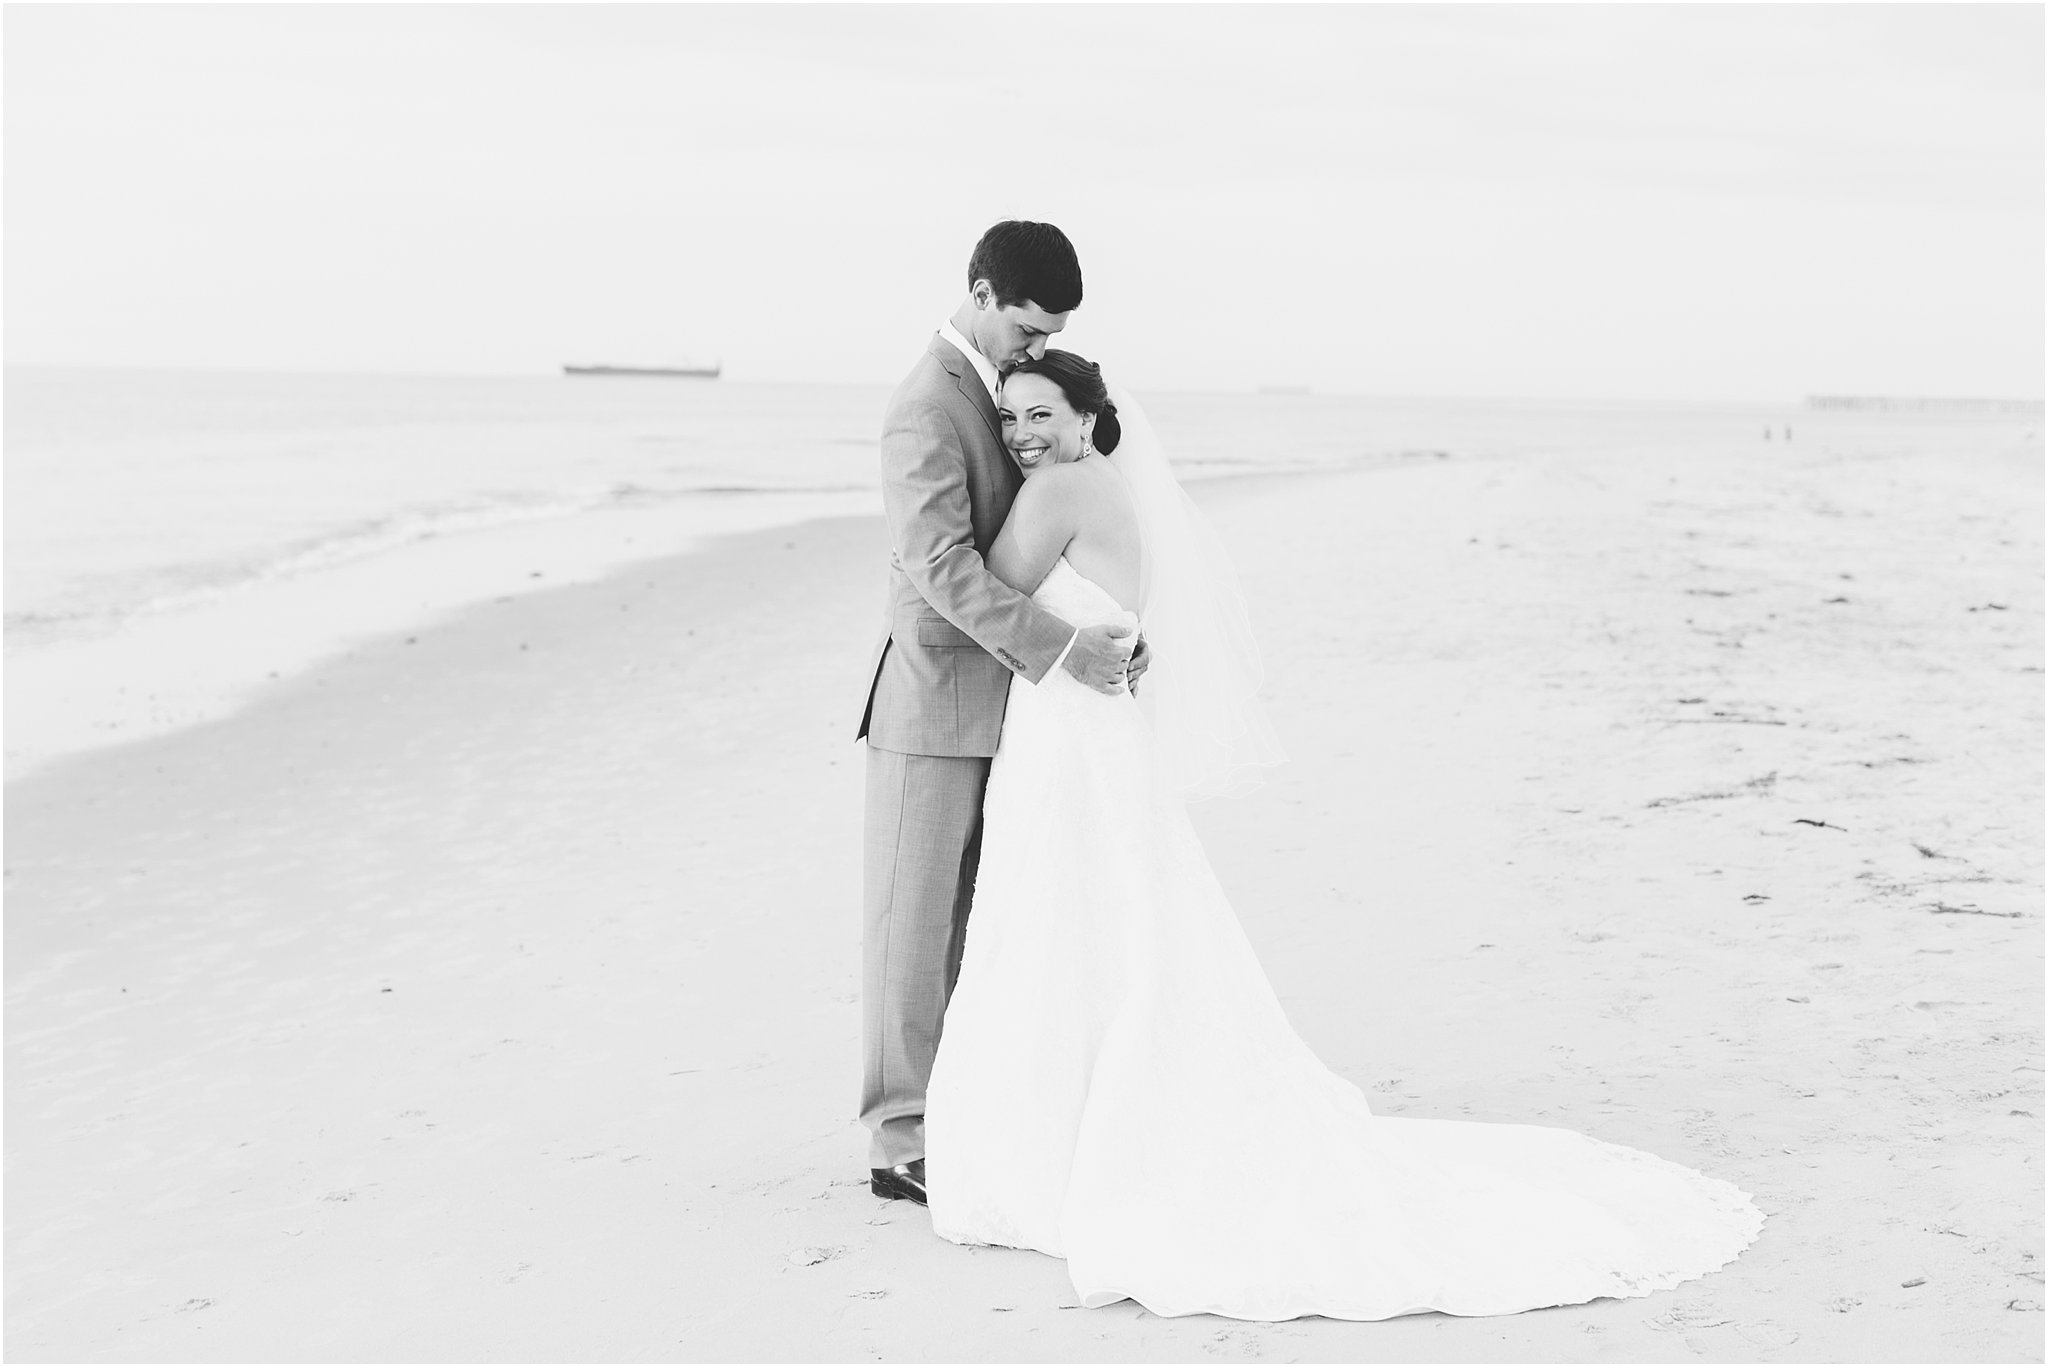 jessica_ryan_photography_wedding_photography_virginiabeach_virginia_candid_authentic_wedding_portraits_marina_shores_yacht_club_chesapeake_bay_1886